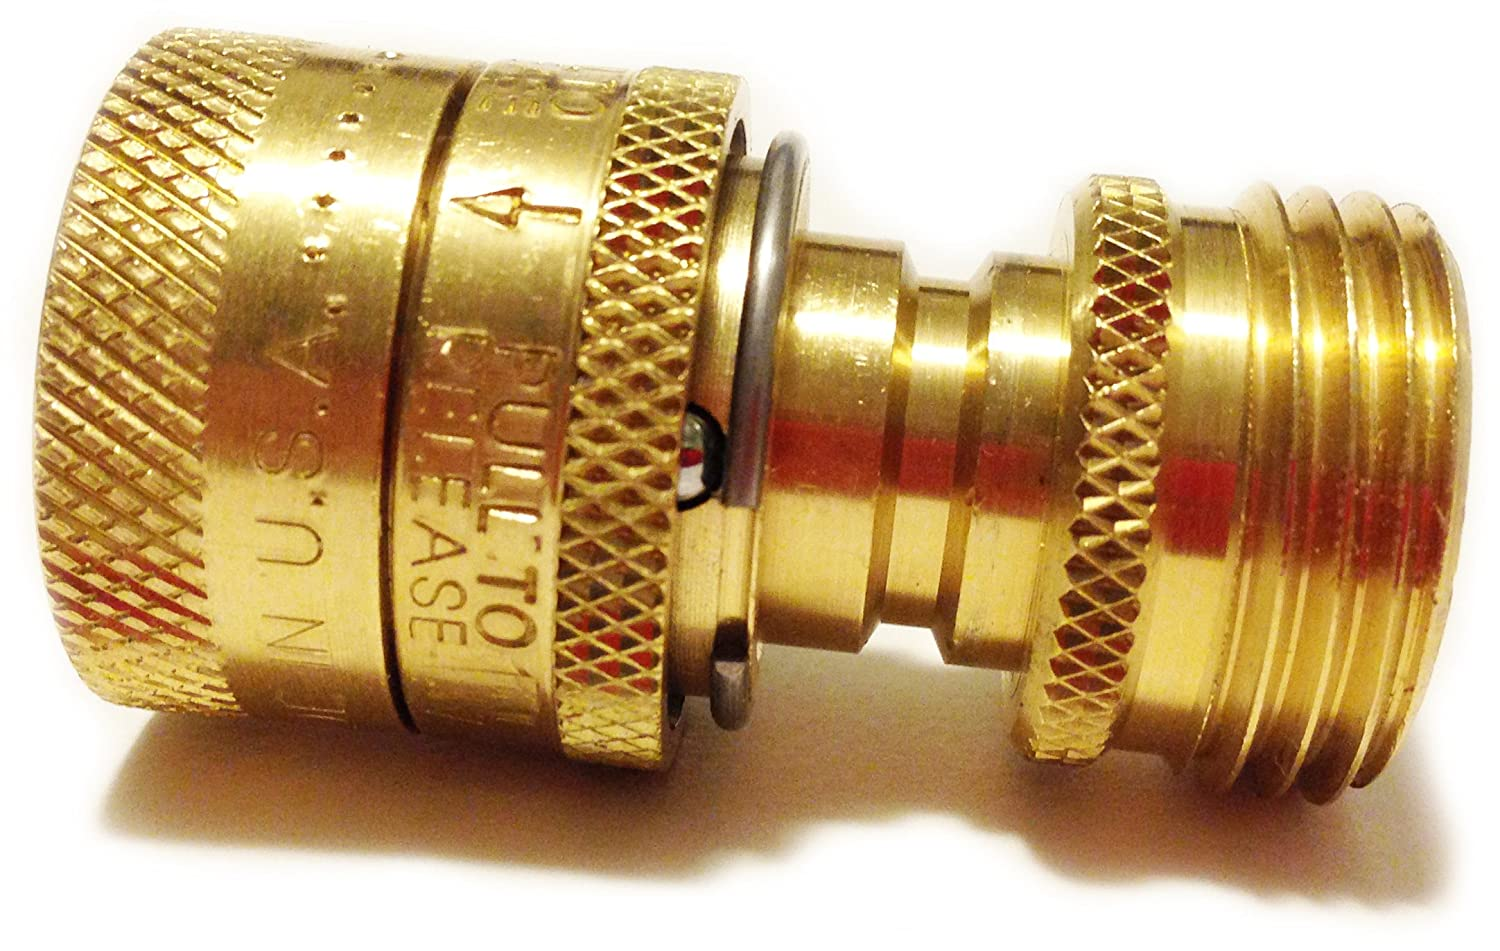 Exceptionnel Amazon.com : Worldu0027s Best Garden Hose Quick Connect : Garden Hose Parts :  Garden U0026 Outdoor